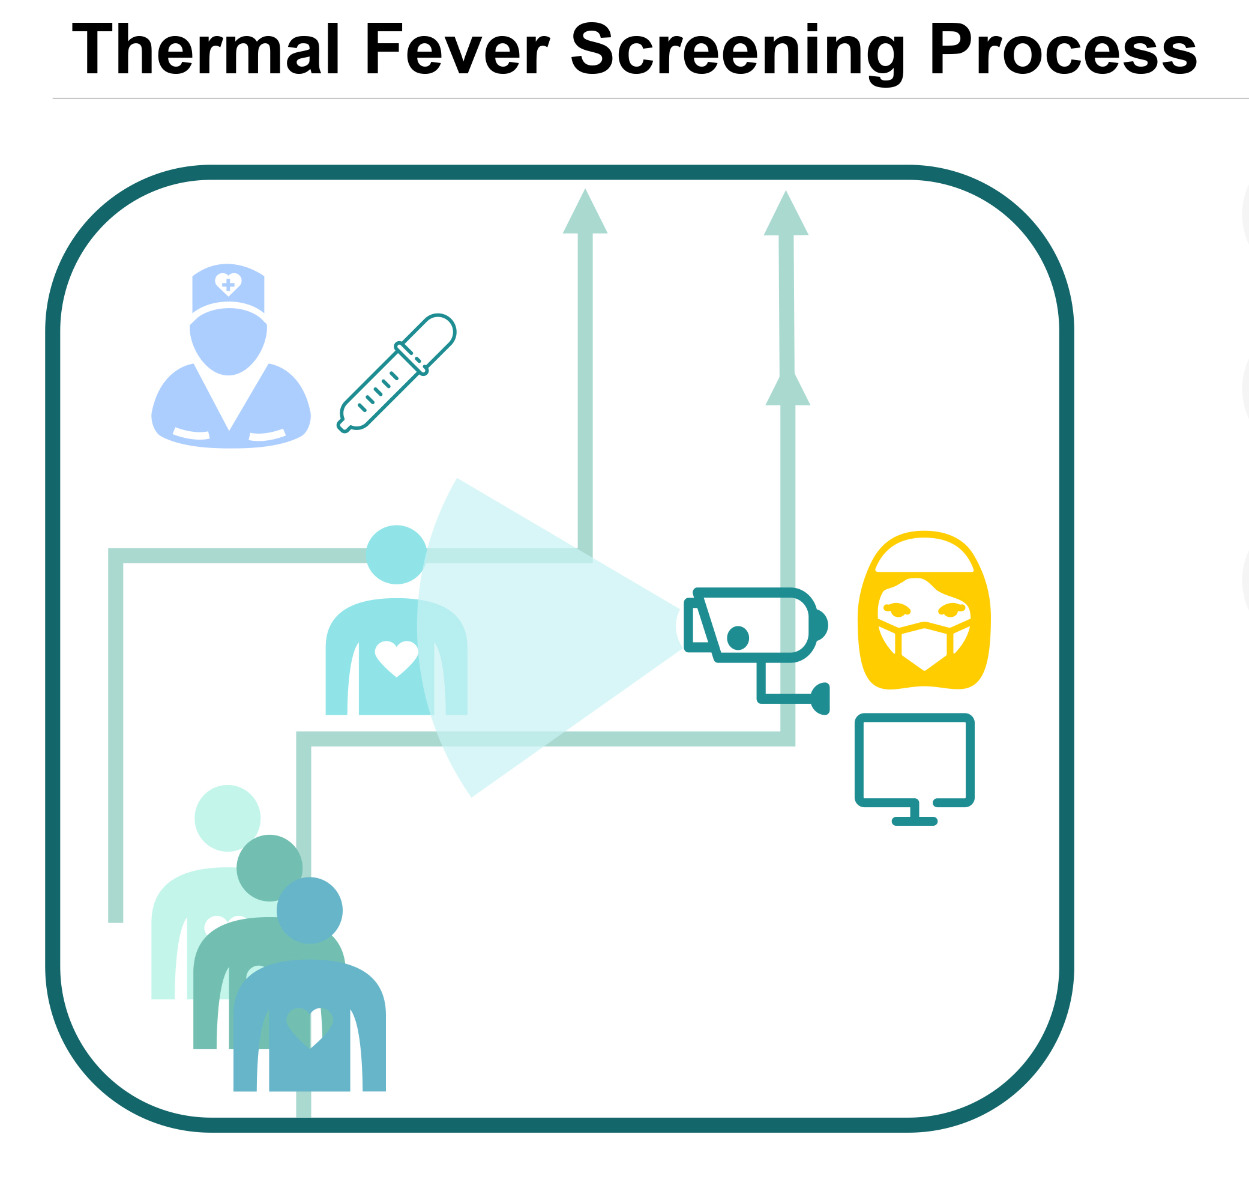 Thermal Fever Screening Process